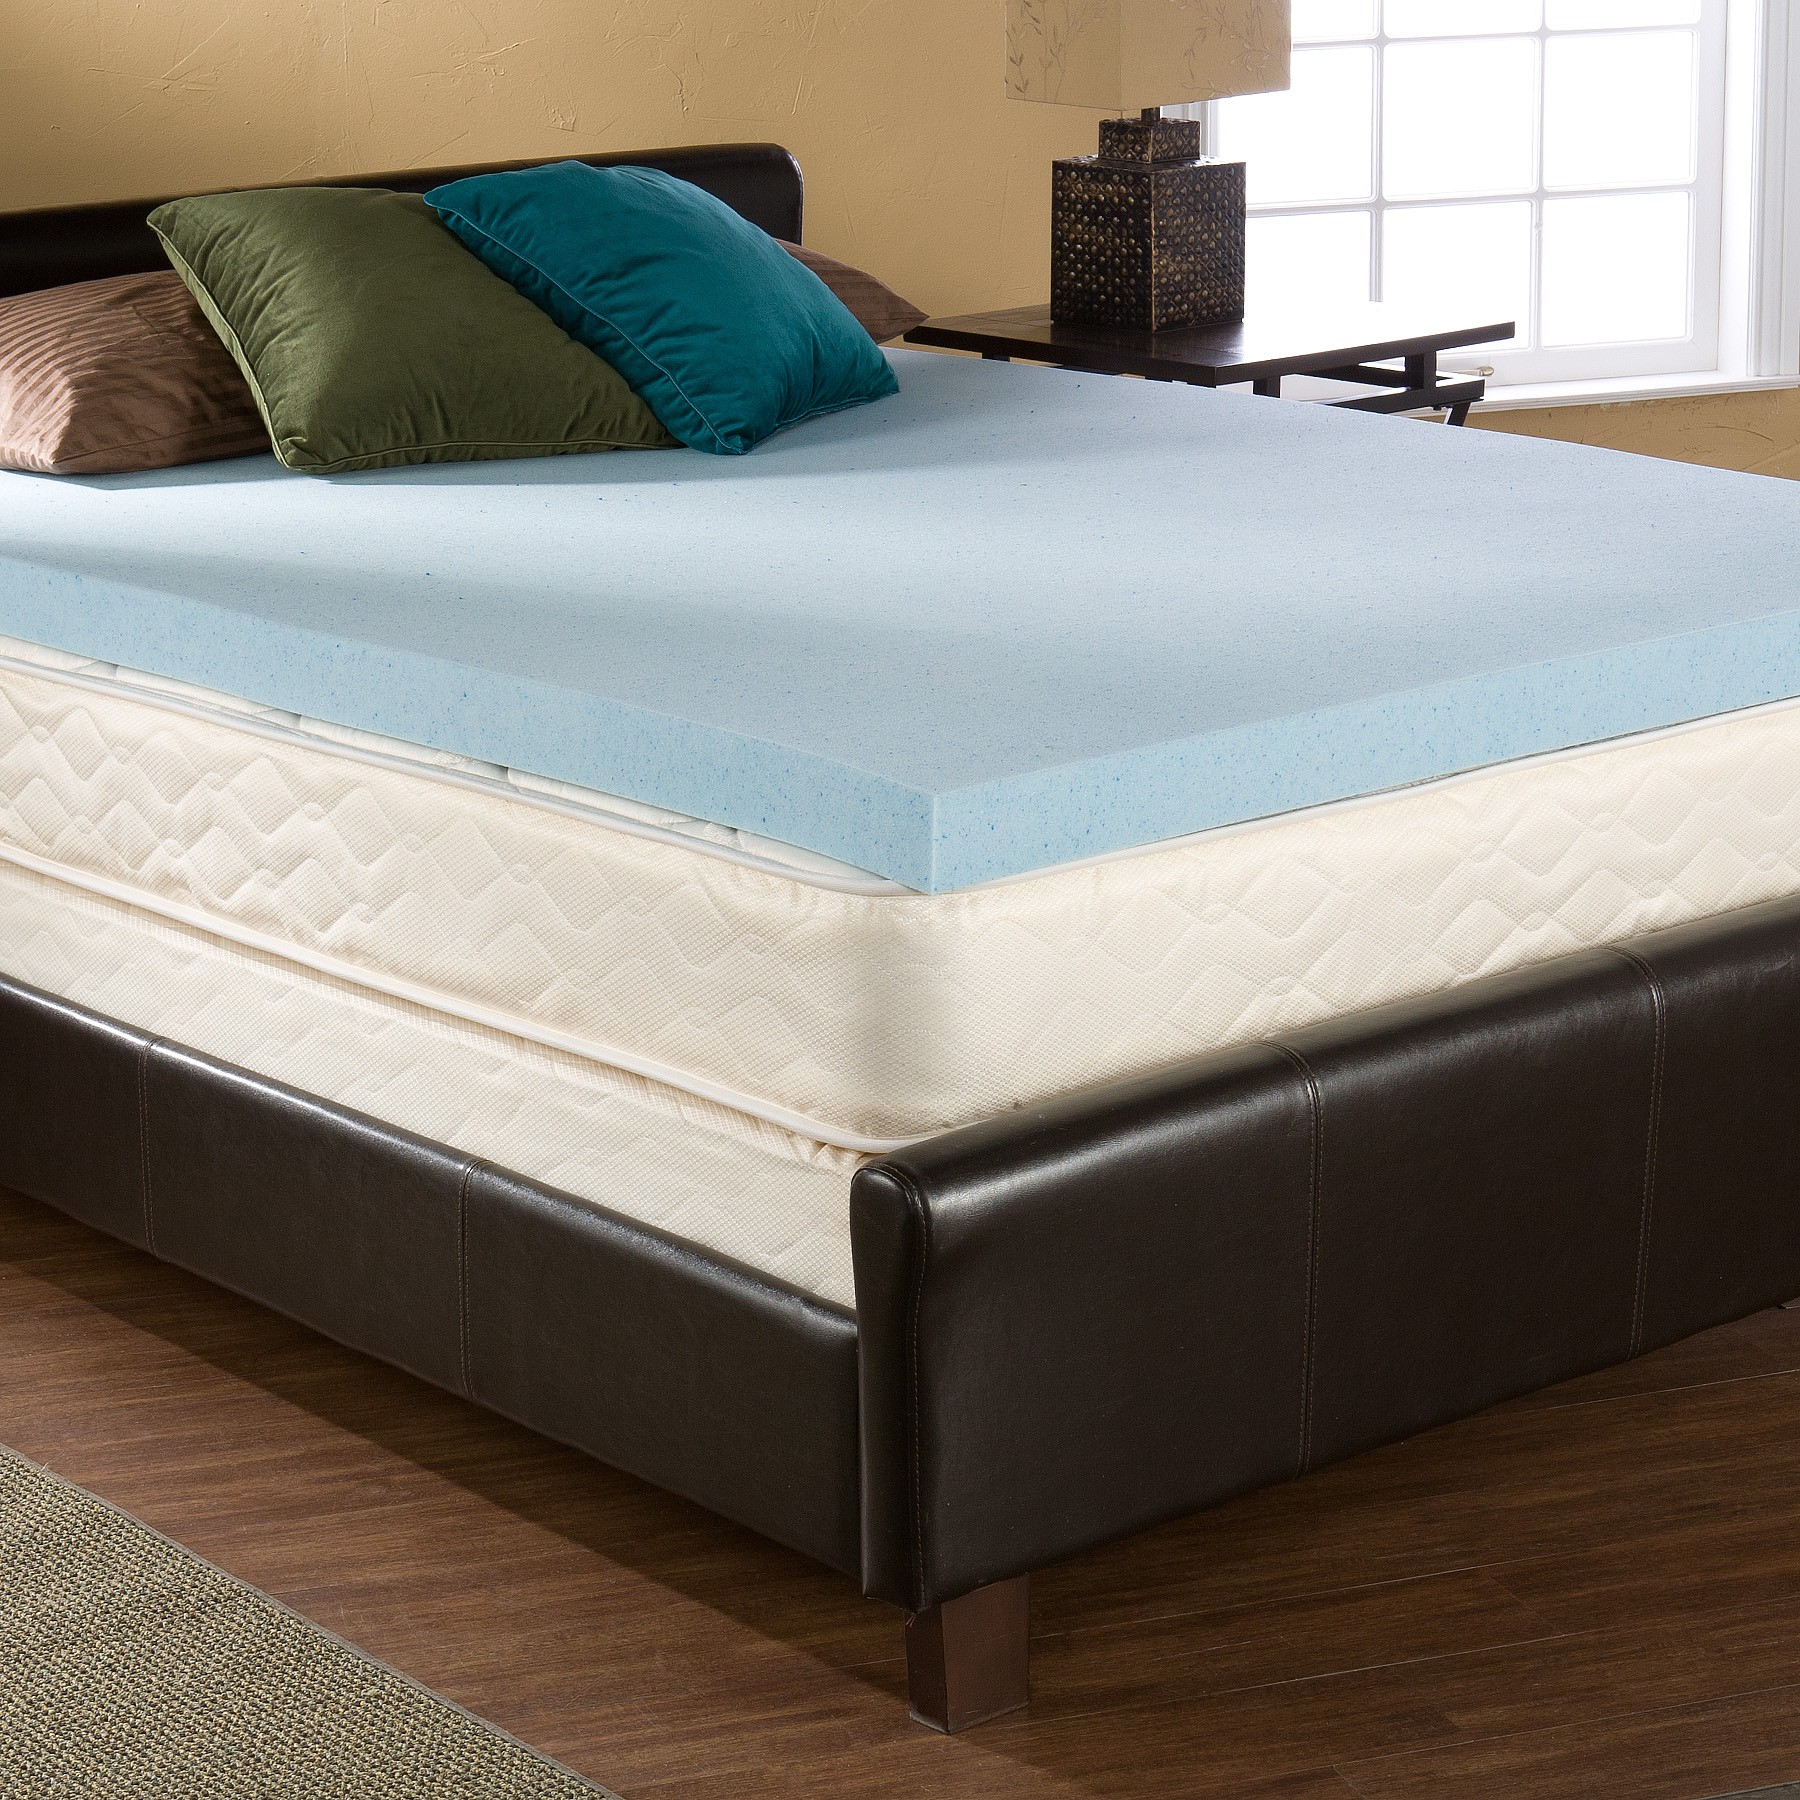 Chill Pad Mattress Topper Ideas